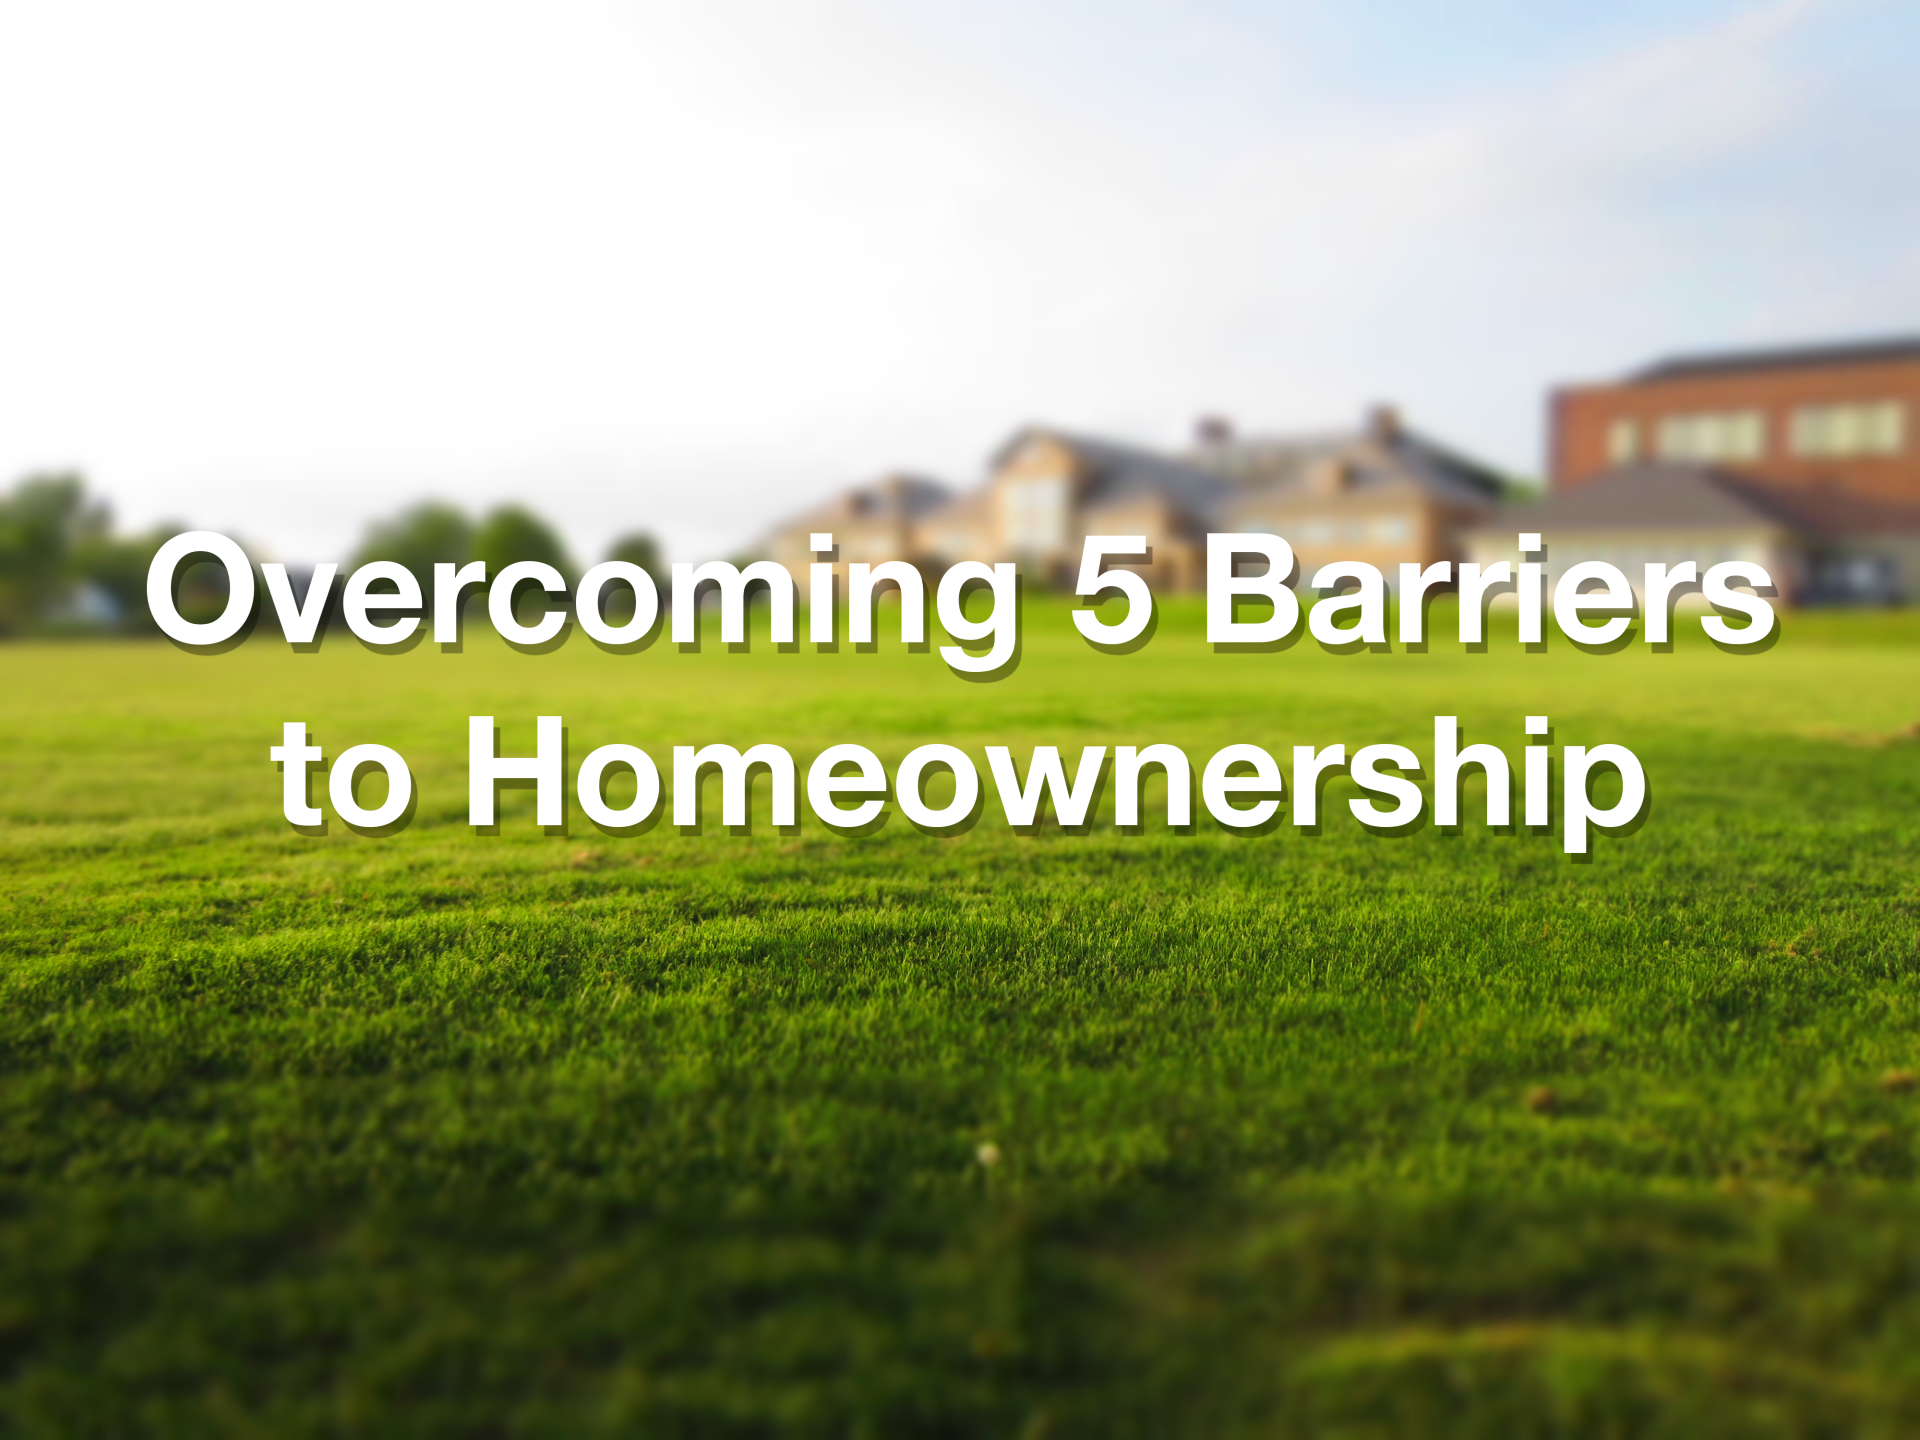 Overcoming 5 Barriers to Homeownership